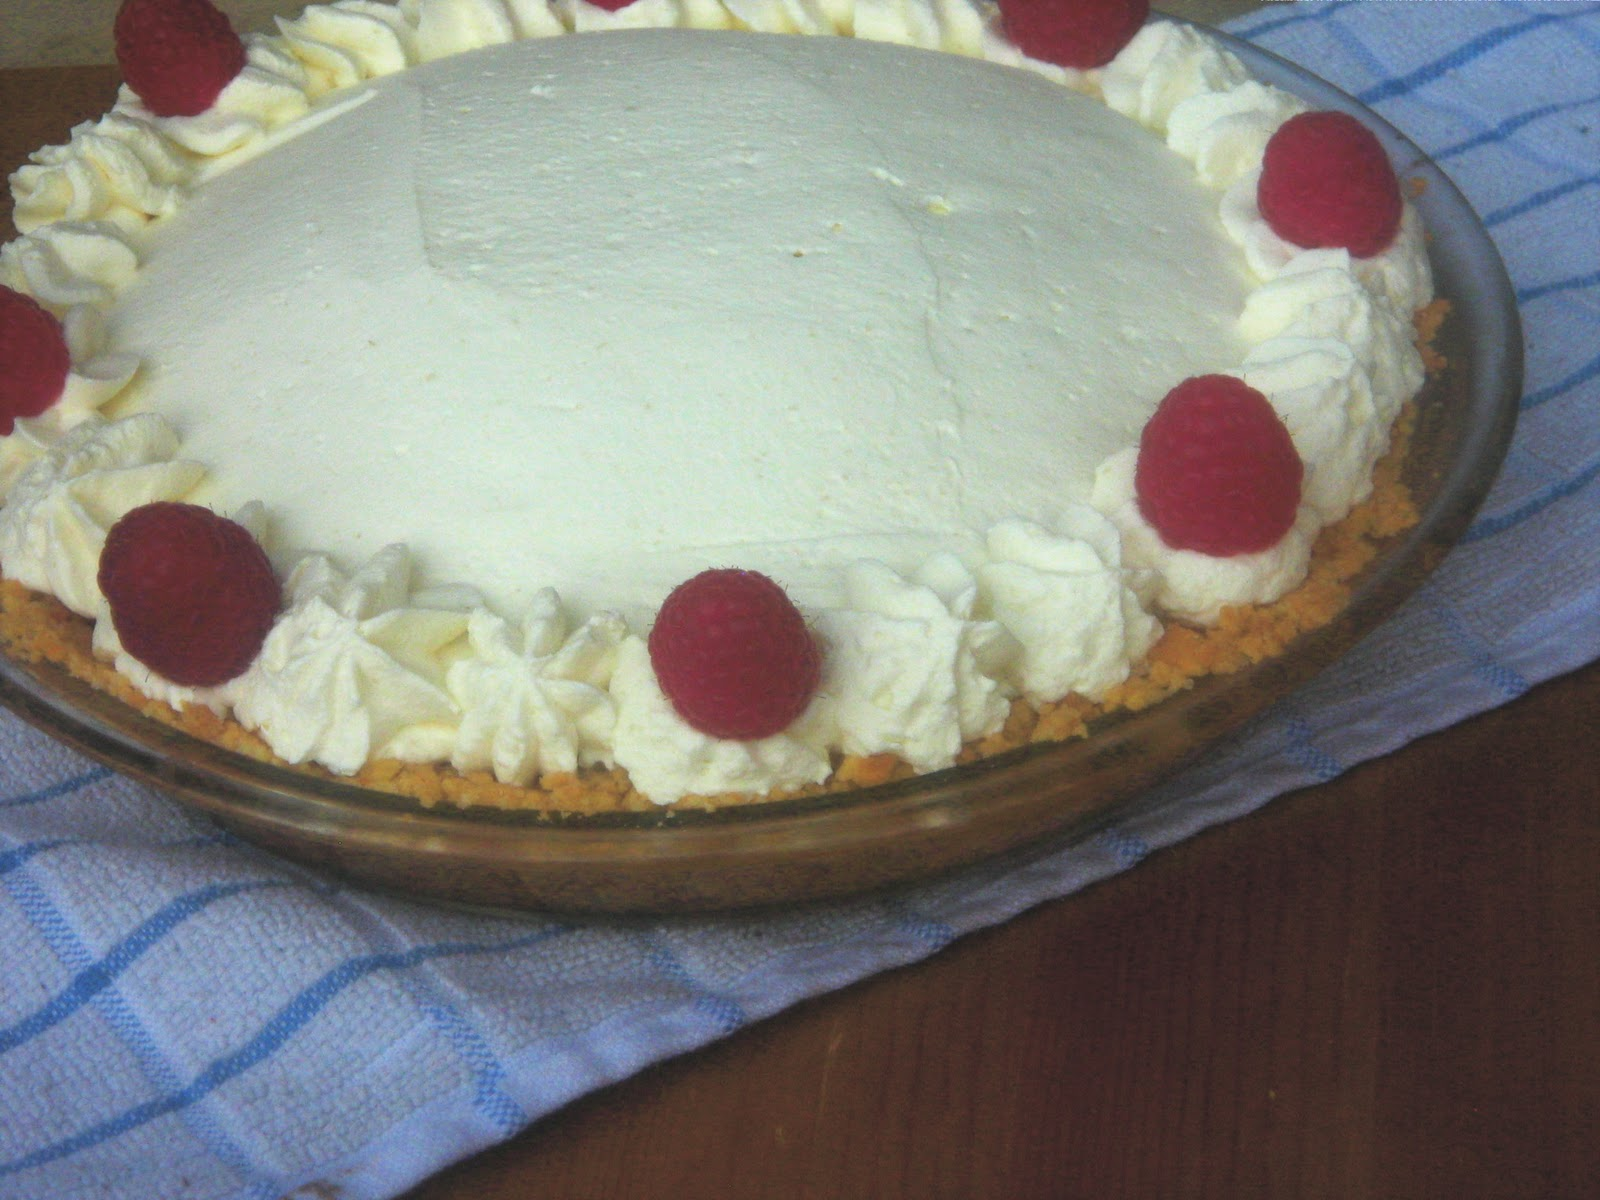 ... Life: Raspberry Cream Pie (Making Good Use of Leftover Pie Filling